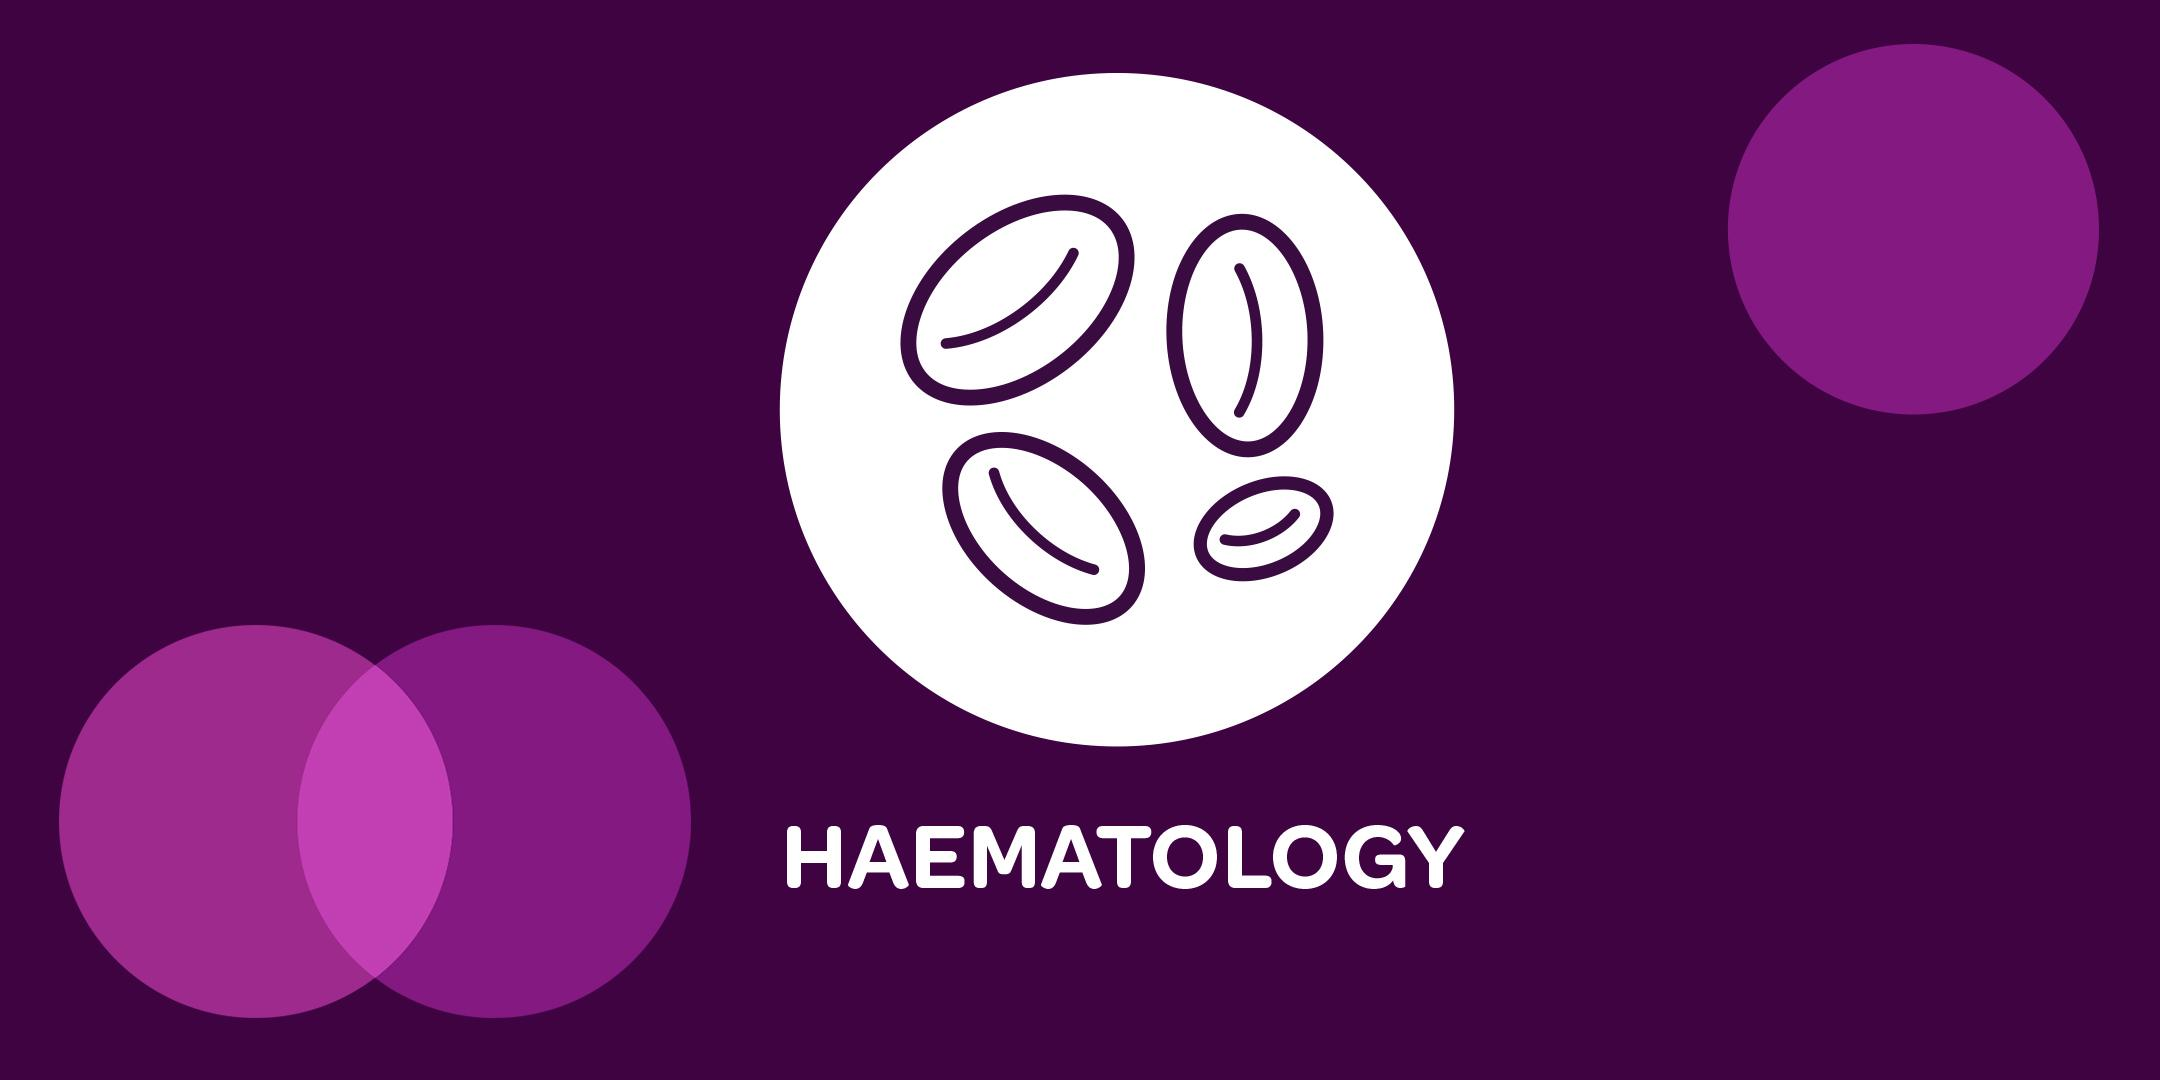 SOLD OUT – Haemostasis and Thrombosis Workshop